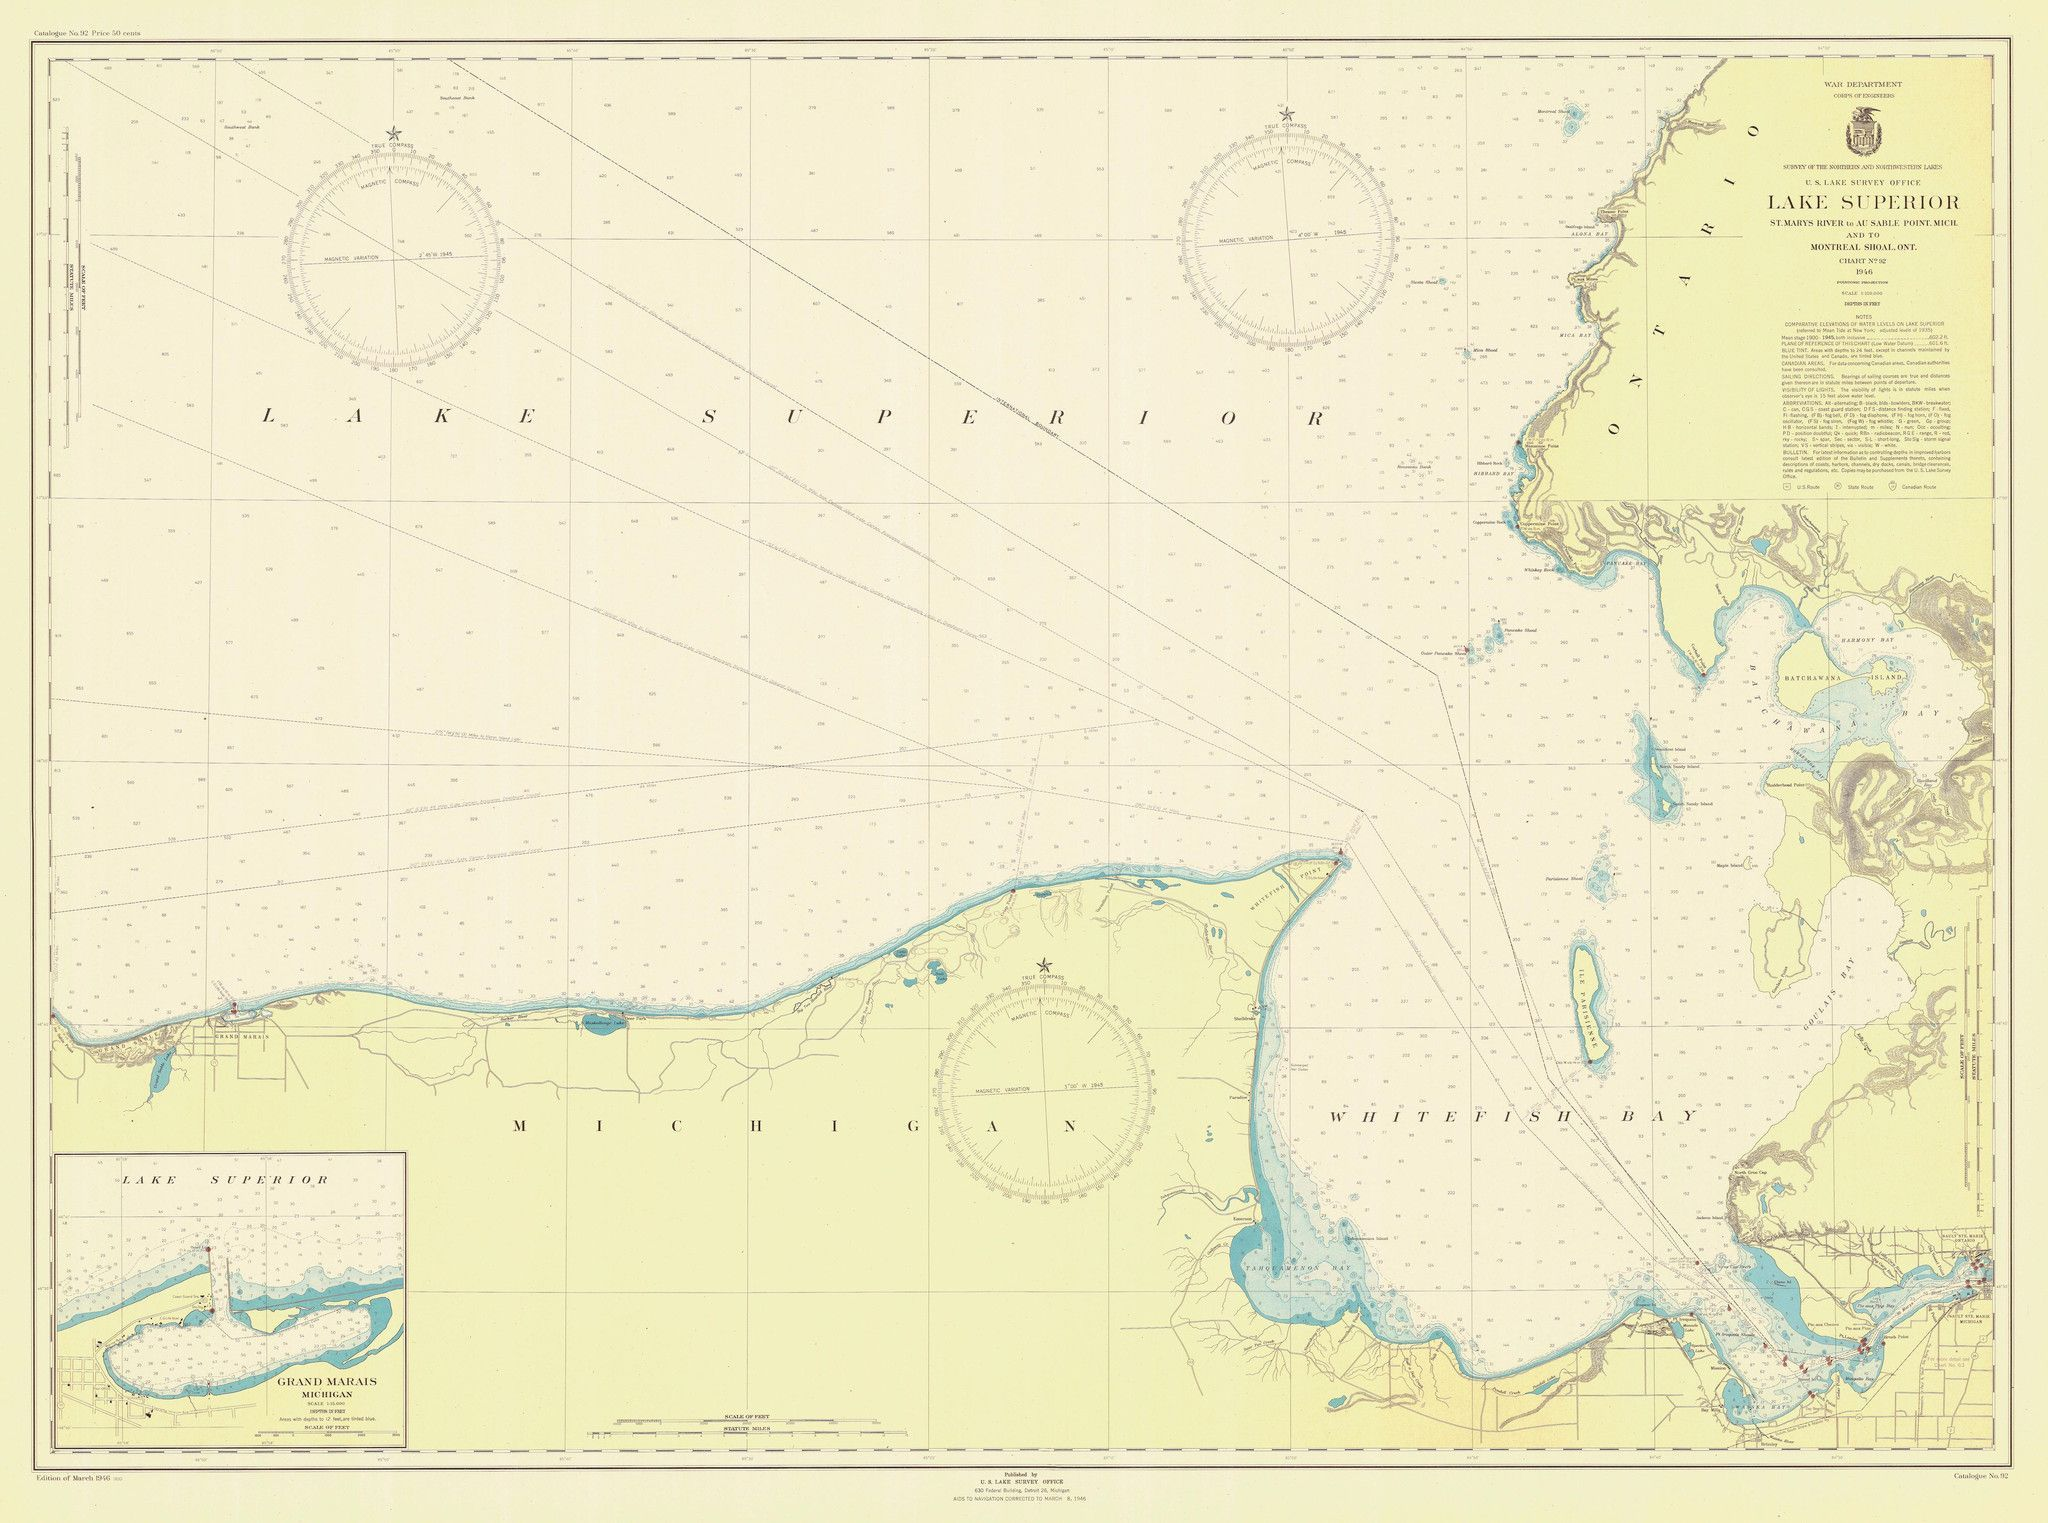 Lake superior east end historical map 1946 lake superior a beautiful high quality print of the historical map of lake superior east end from we take great care to ensure that the best materials packaging and s freerunsca Choice Image